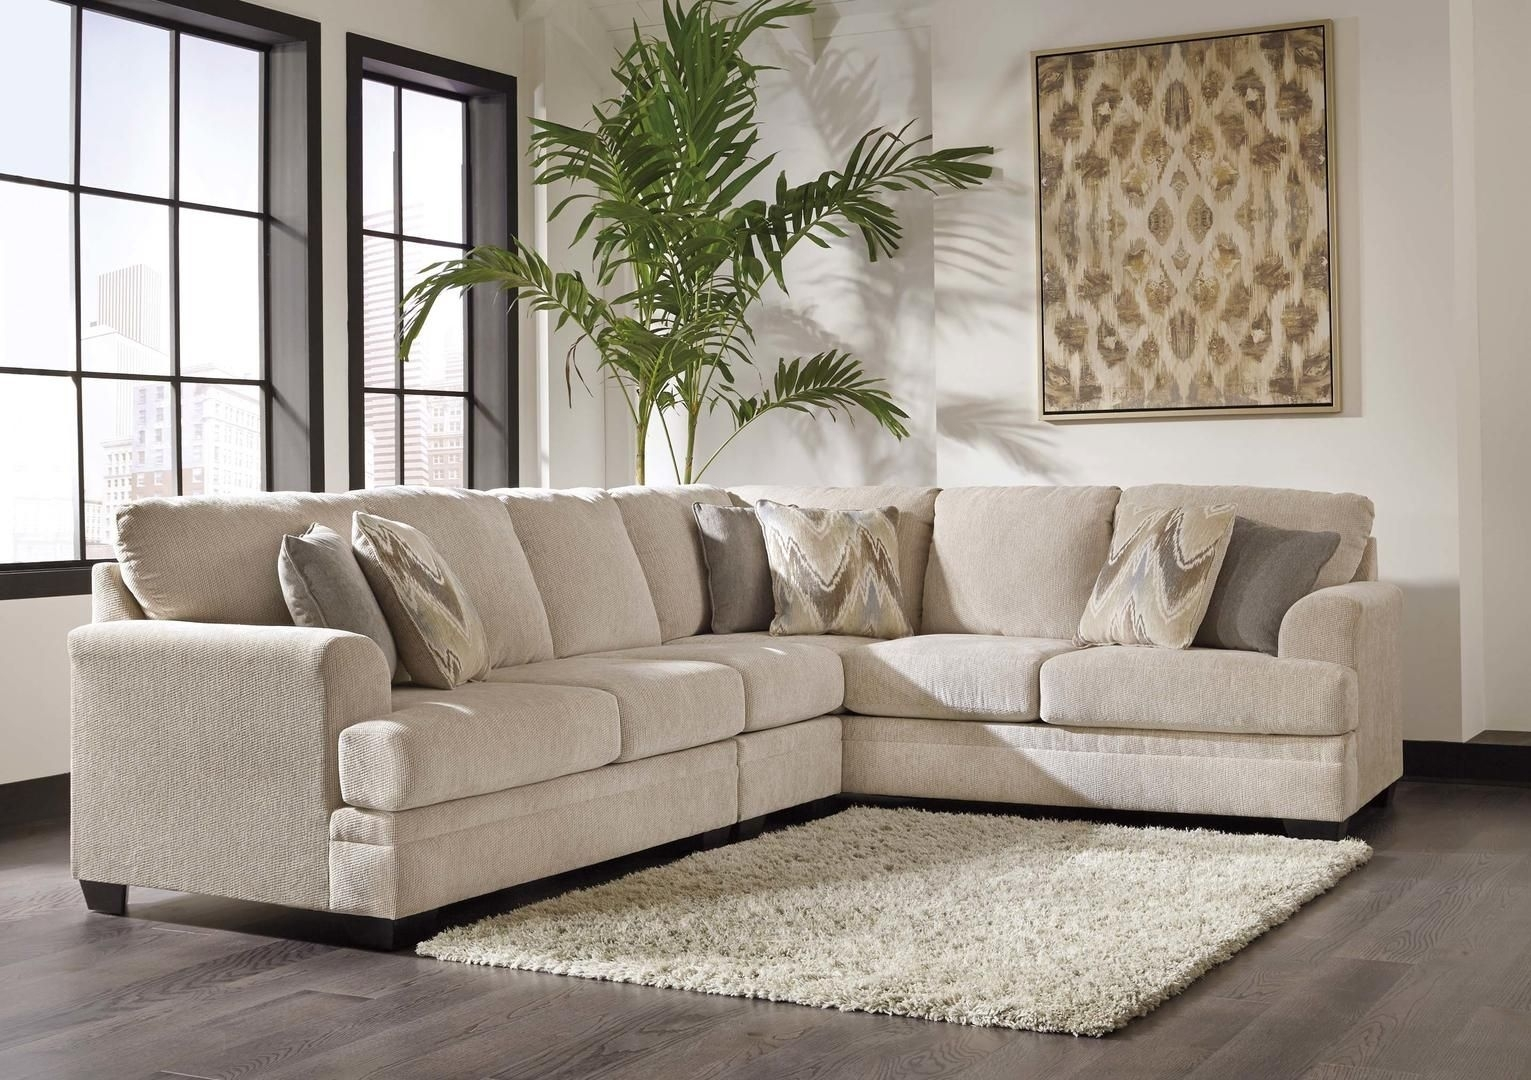 Ameer 81806 55 46 67 3 Piece Fabric Sectional Sofa With Left Arm With Malbry Point 3 Piece Sectionals With Raf Chaise (View 15 of 25)